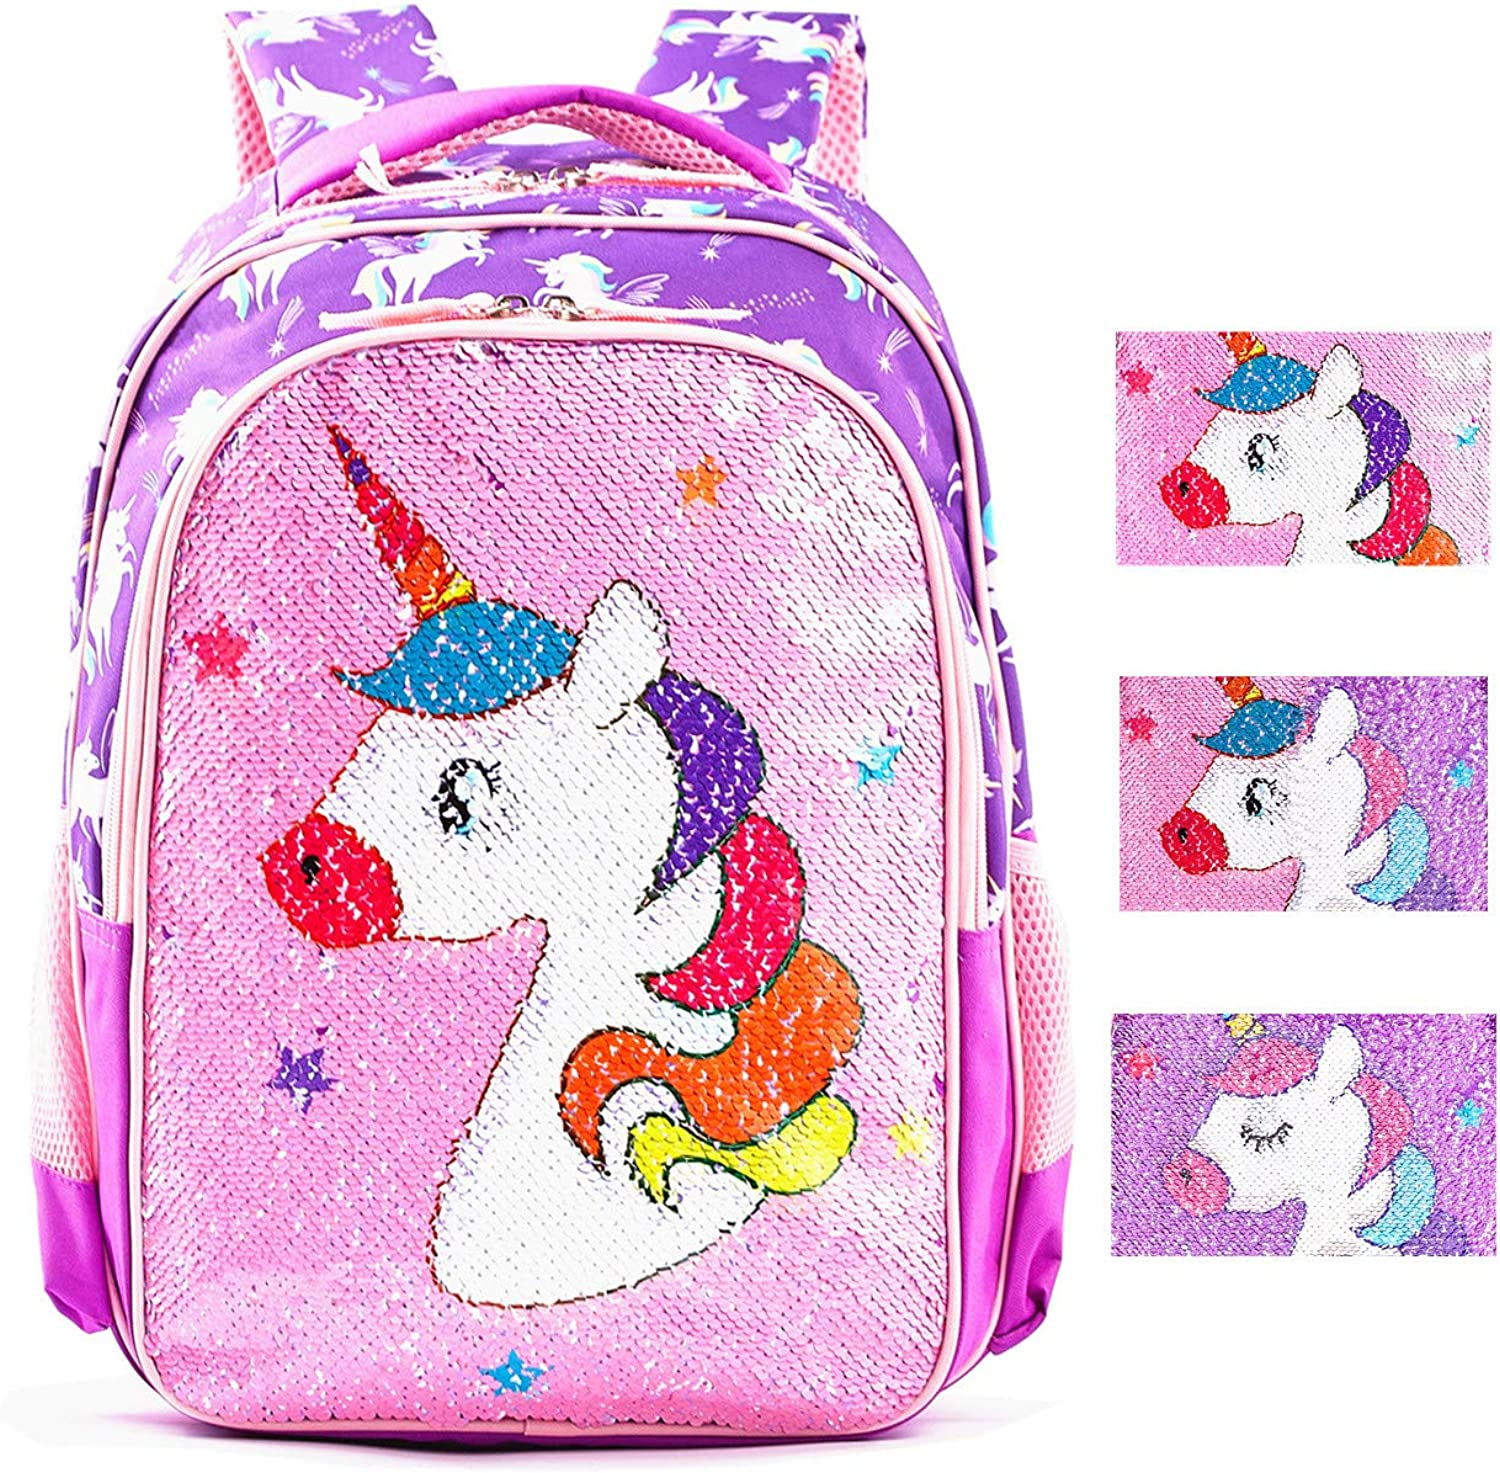 Magic Reversible Sequin School Bag, Lightweight Pre-School Backpack for for Kindergarten or Elementary